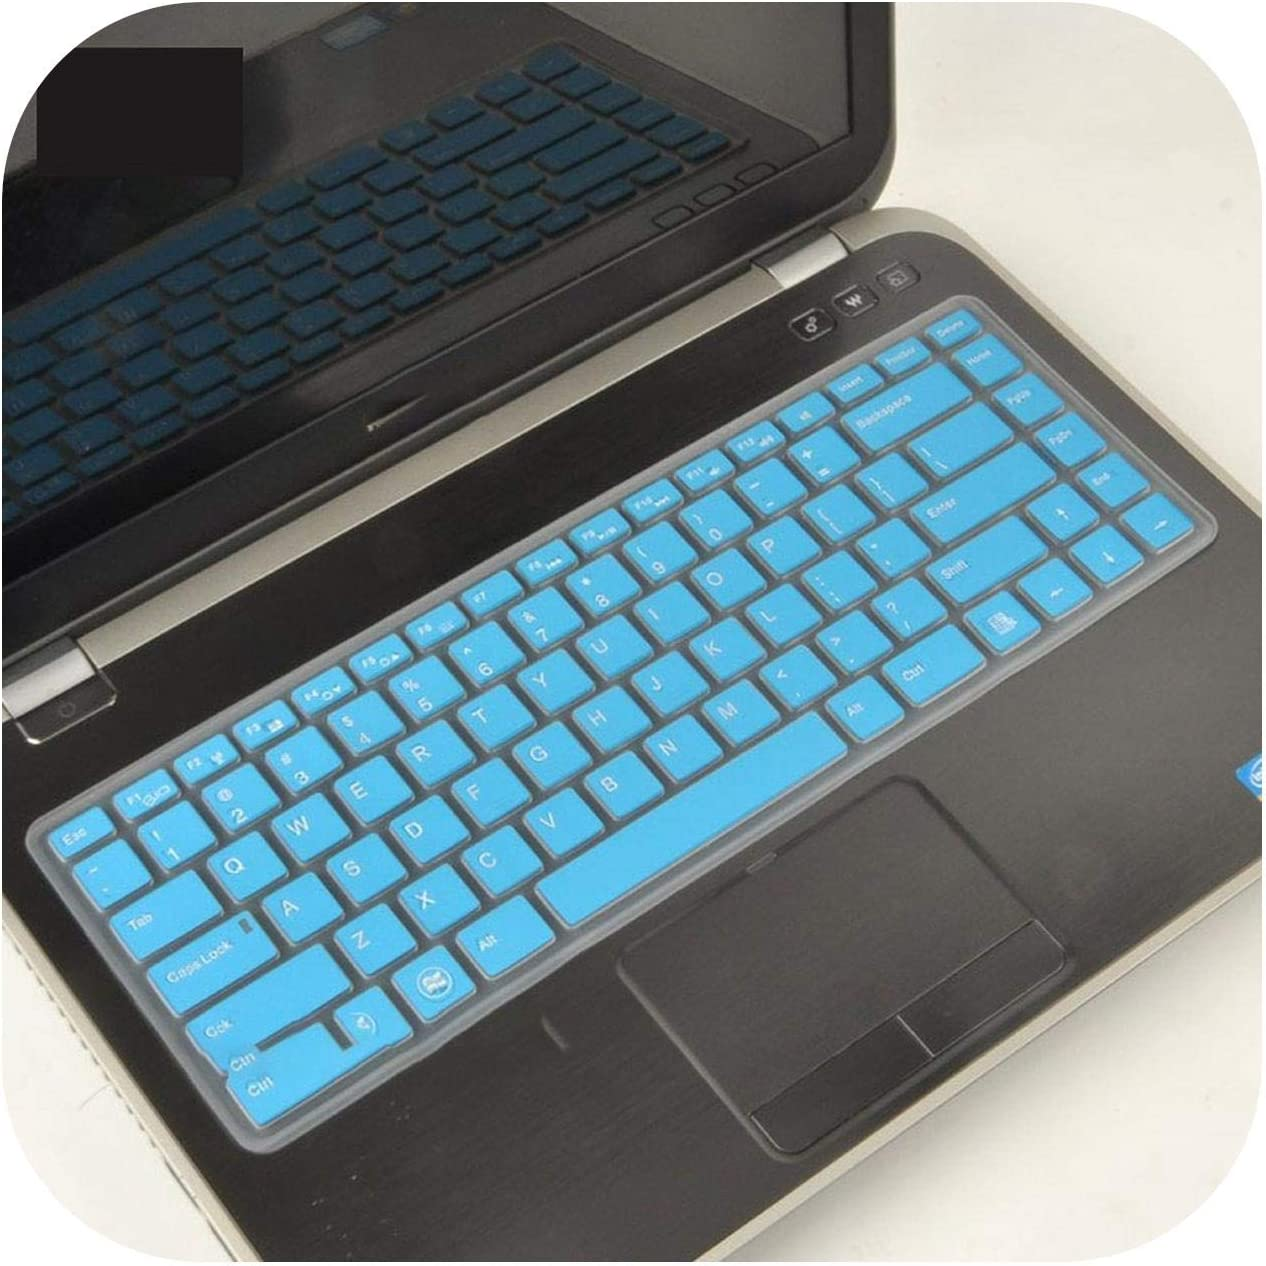 Film Pour Clavier 14 Inch Laptop Keyboard Cover for Dell Inspiron 14R 5437 N4050 N4110 3437 5525 5520 1420 1410 1520 1525 1545 1500-Blue